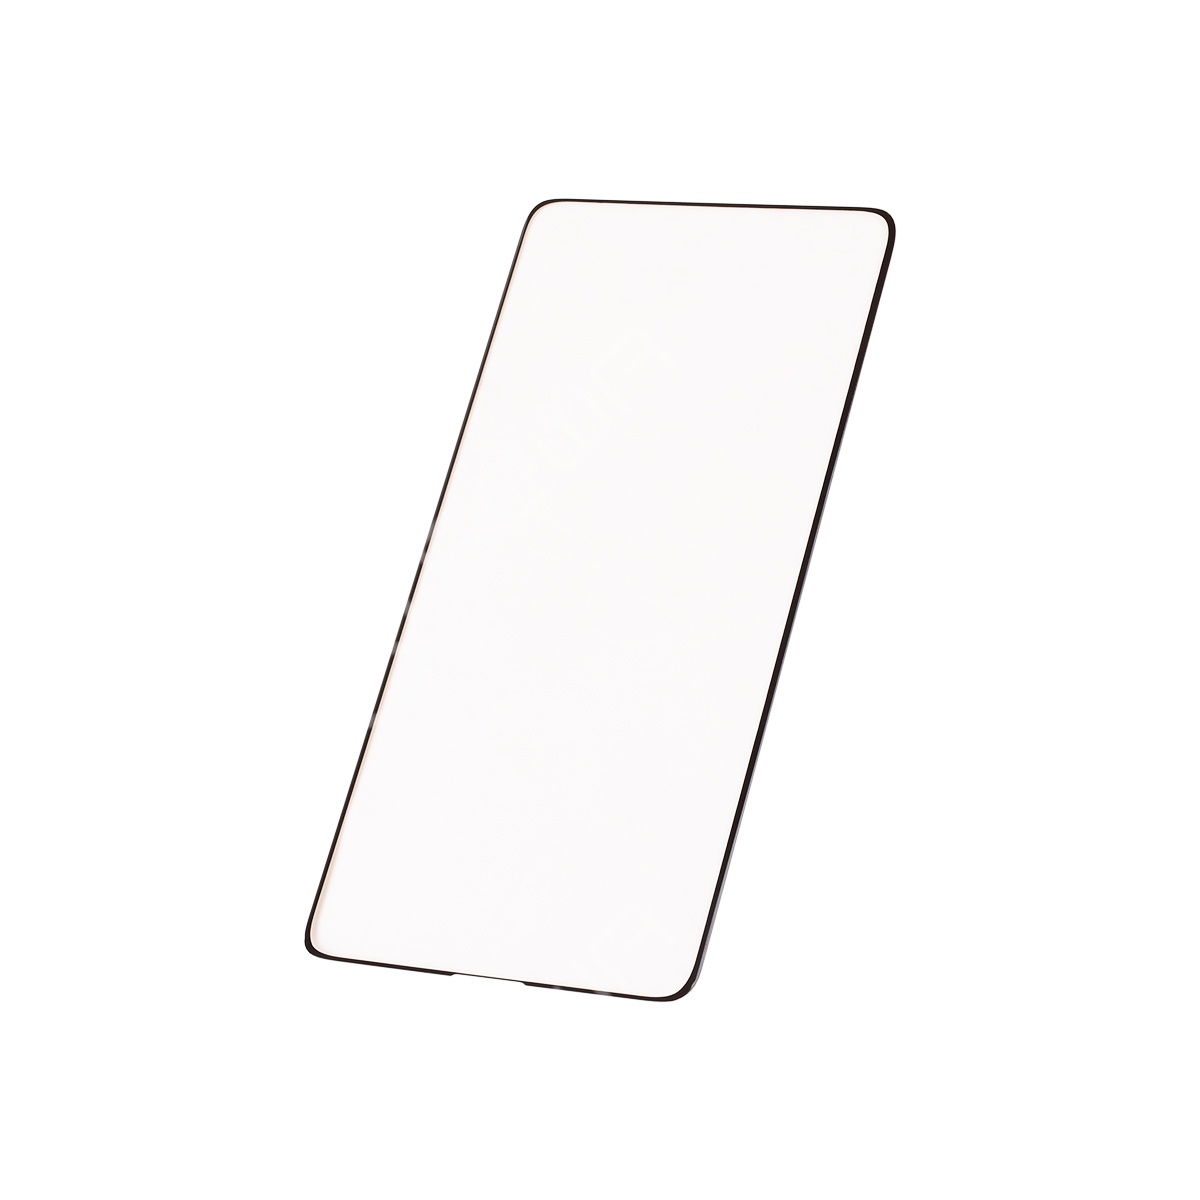 9H Sumsung Full Coverage Tempered Glass Screen Protector For Samsung S8/S8+/S9/S9+/N9